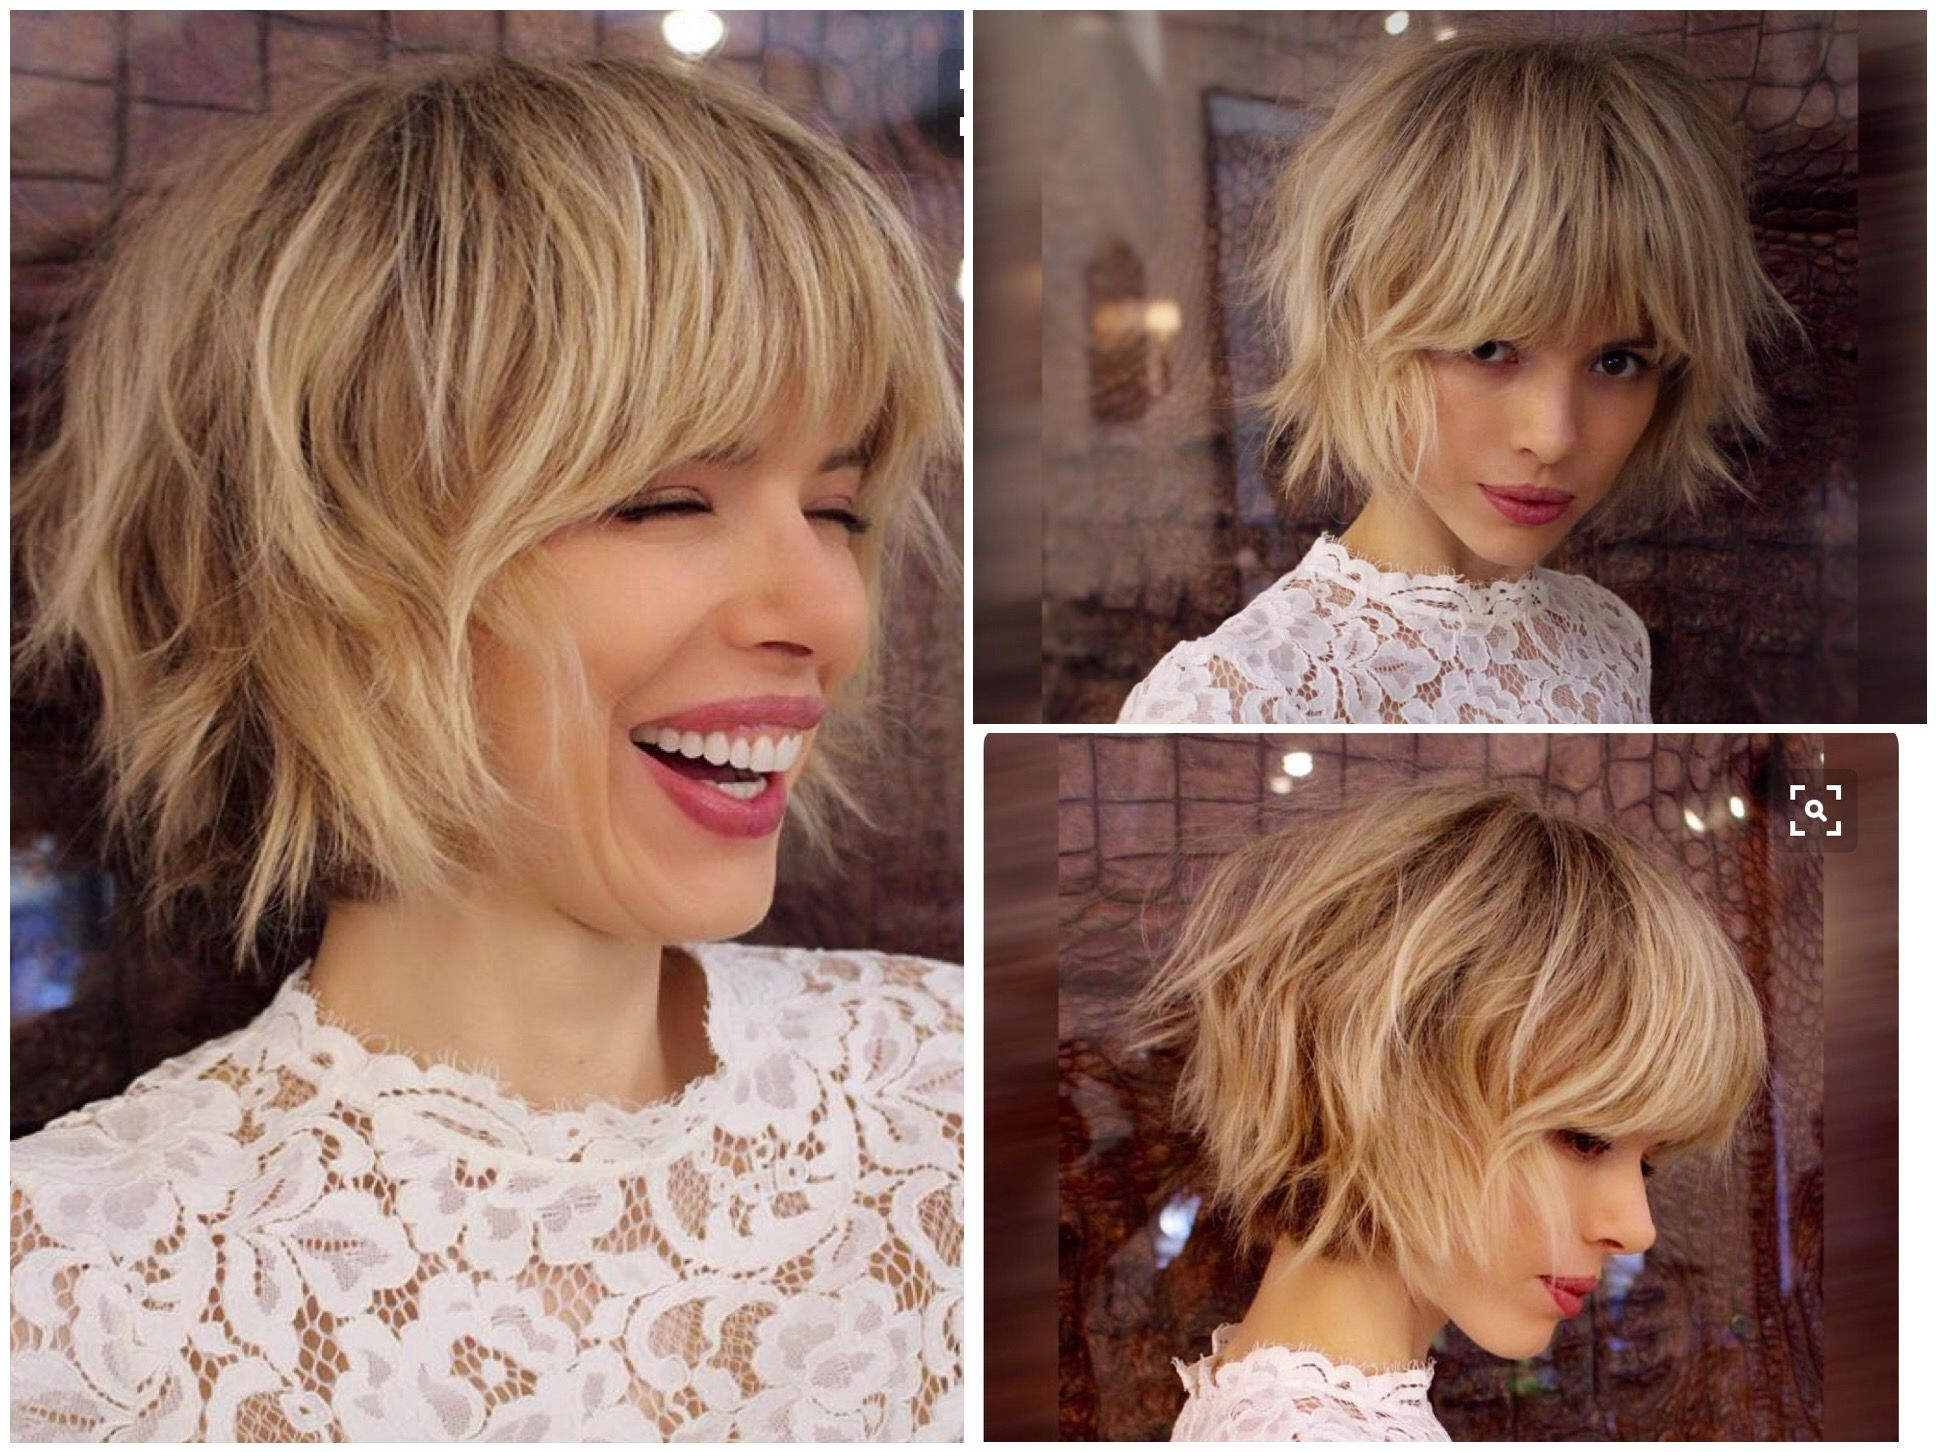 Layered Bob With Some Fringe Bang Could Be Pretty Versatile